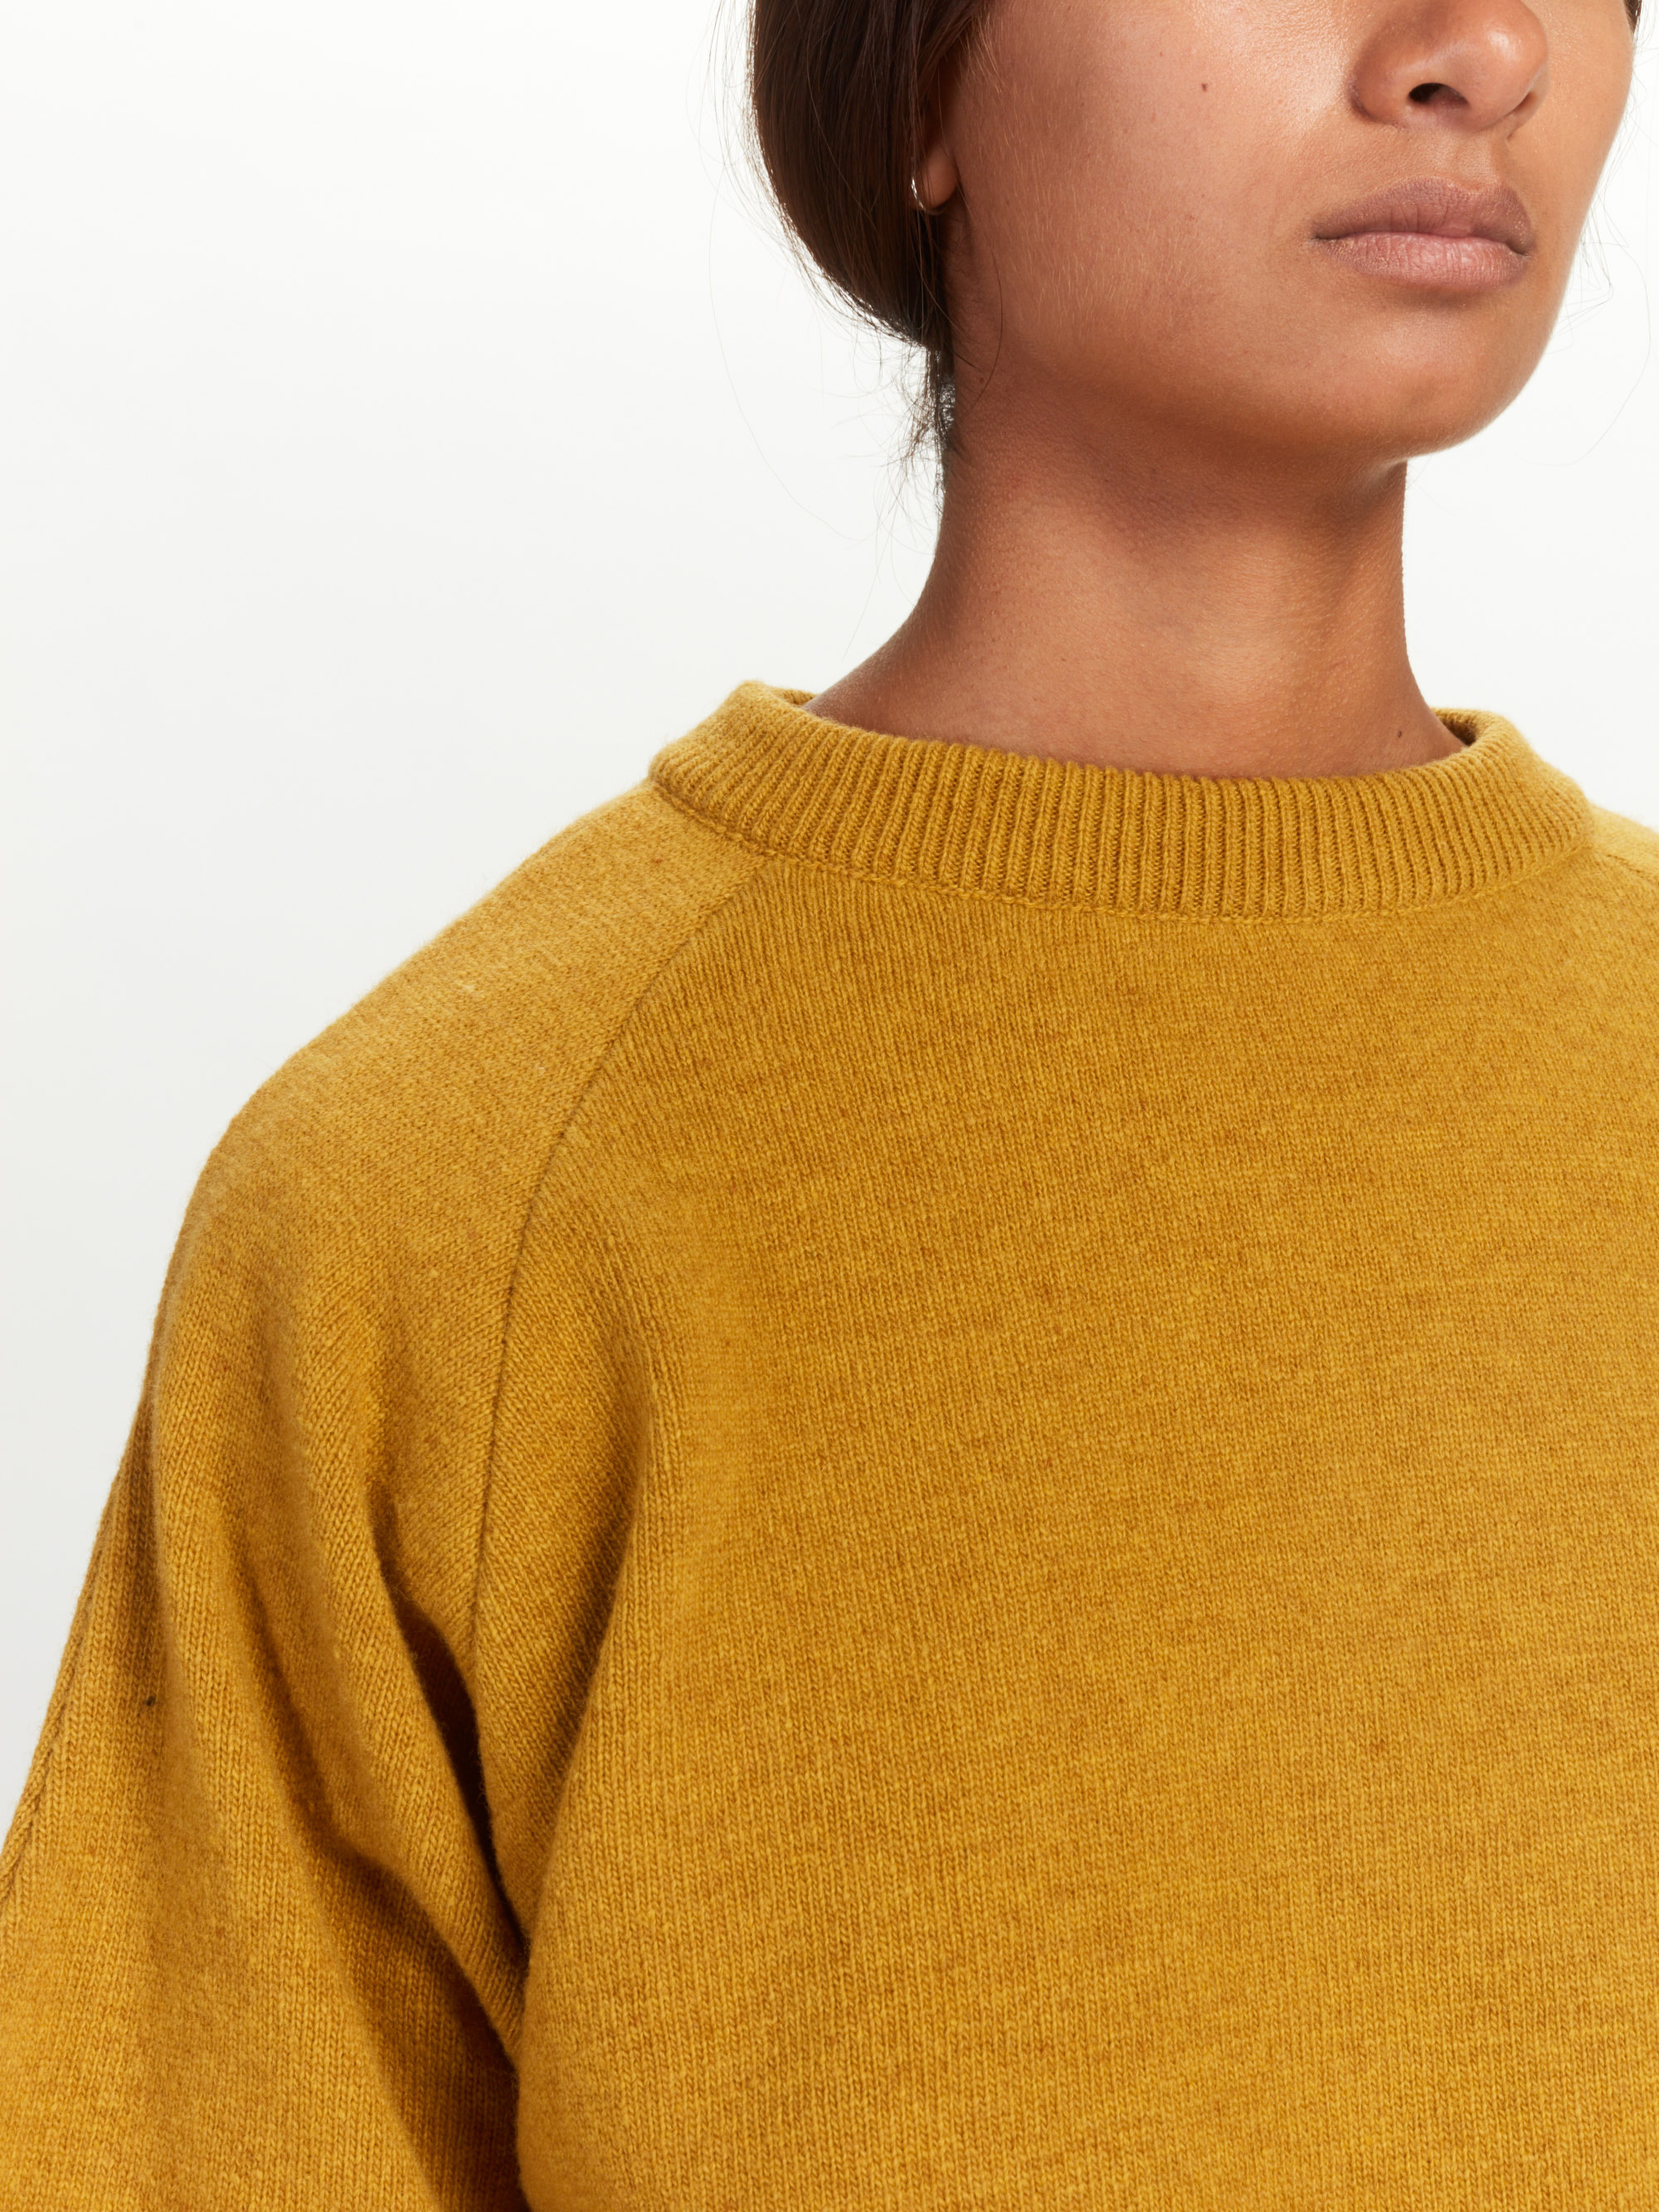 jt_sweater-woolf_25-16-2019__picture-3635